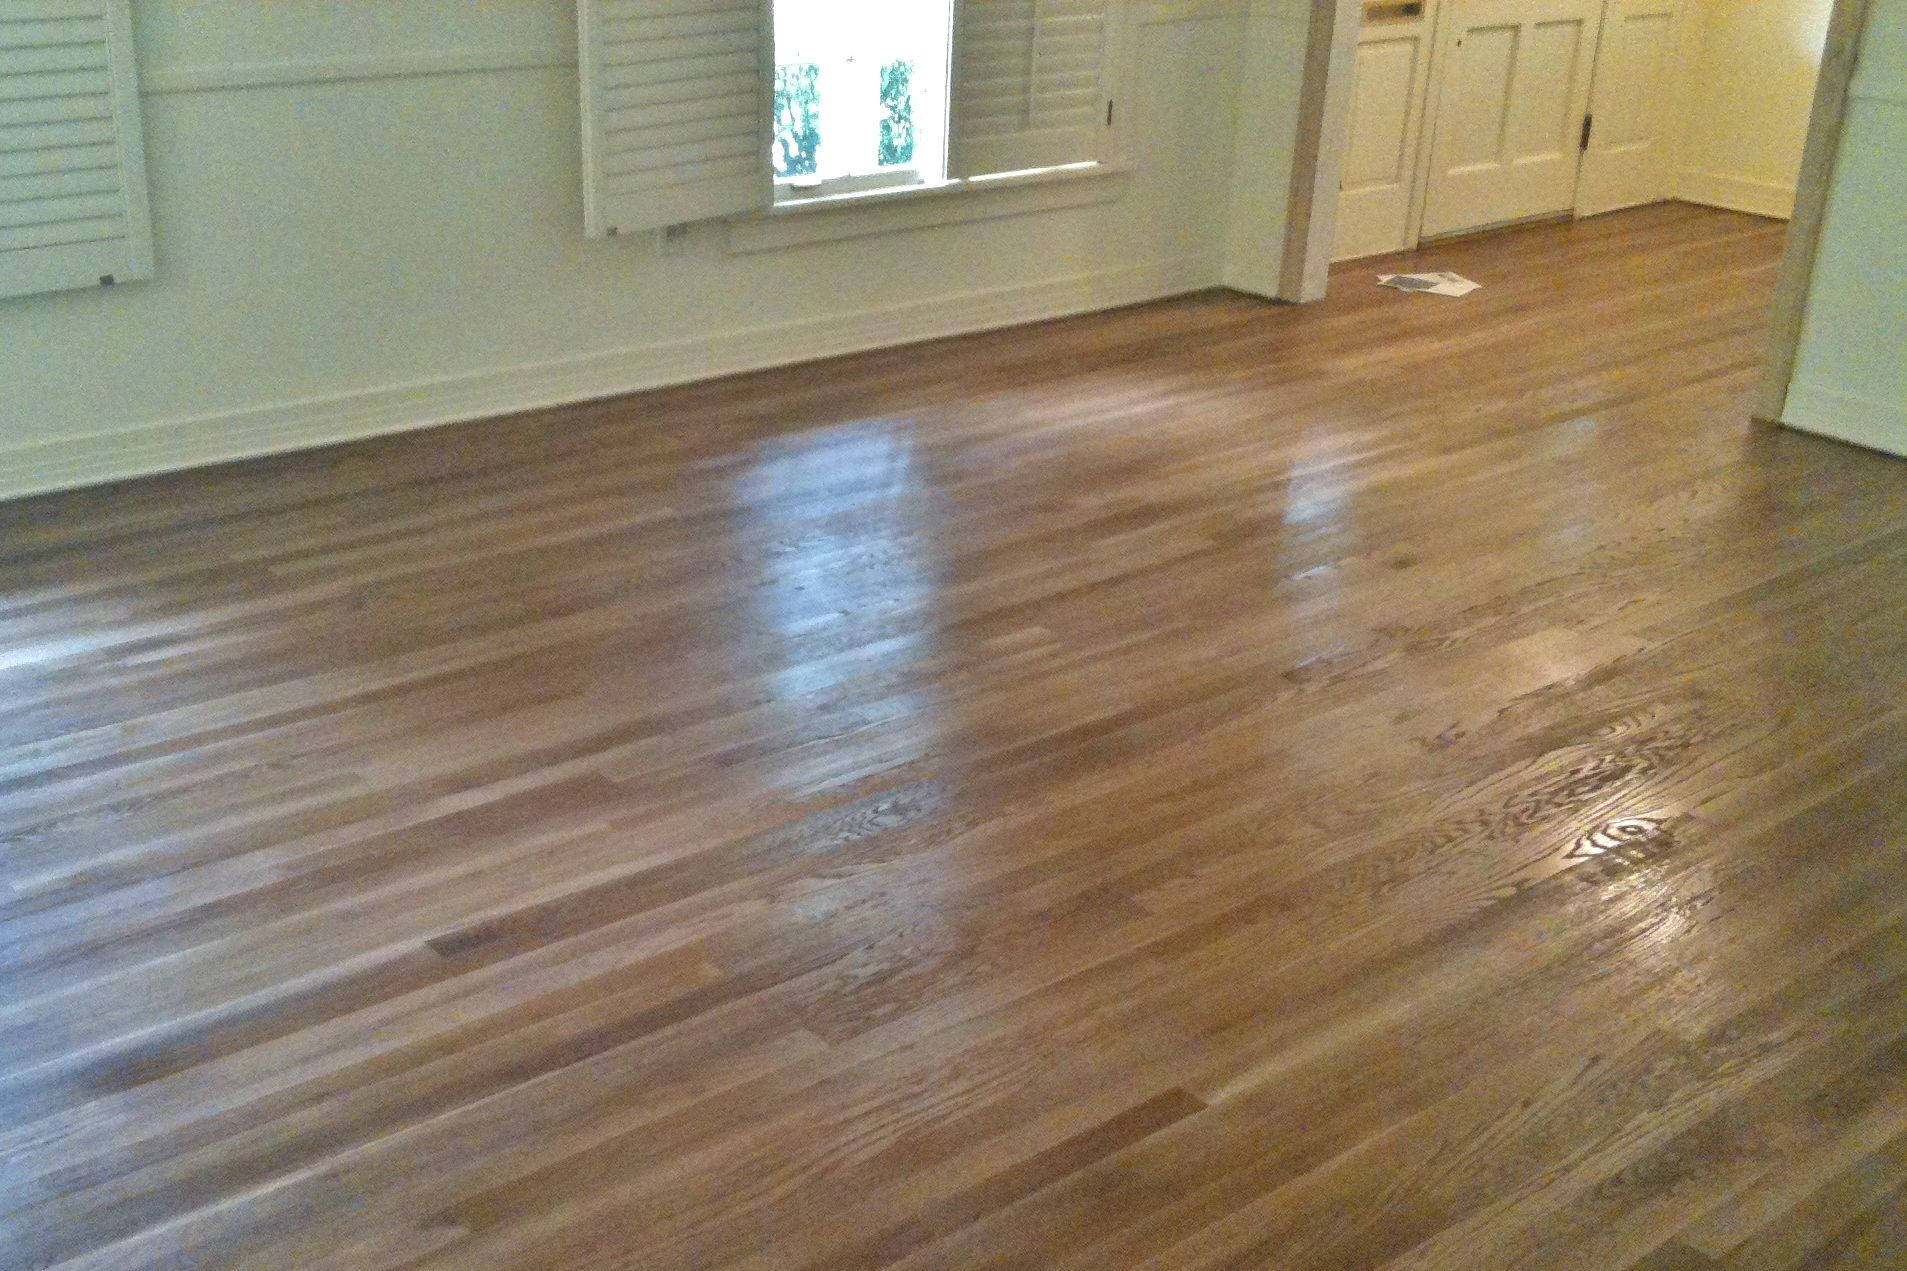 17 Unique Grey Hardwood Floors Houzz 2021 free download grey hardwood floors houzz of oak meet special walnut home design pinterest flooring with minwax special walnut stain on oak hardwood floors